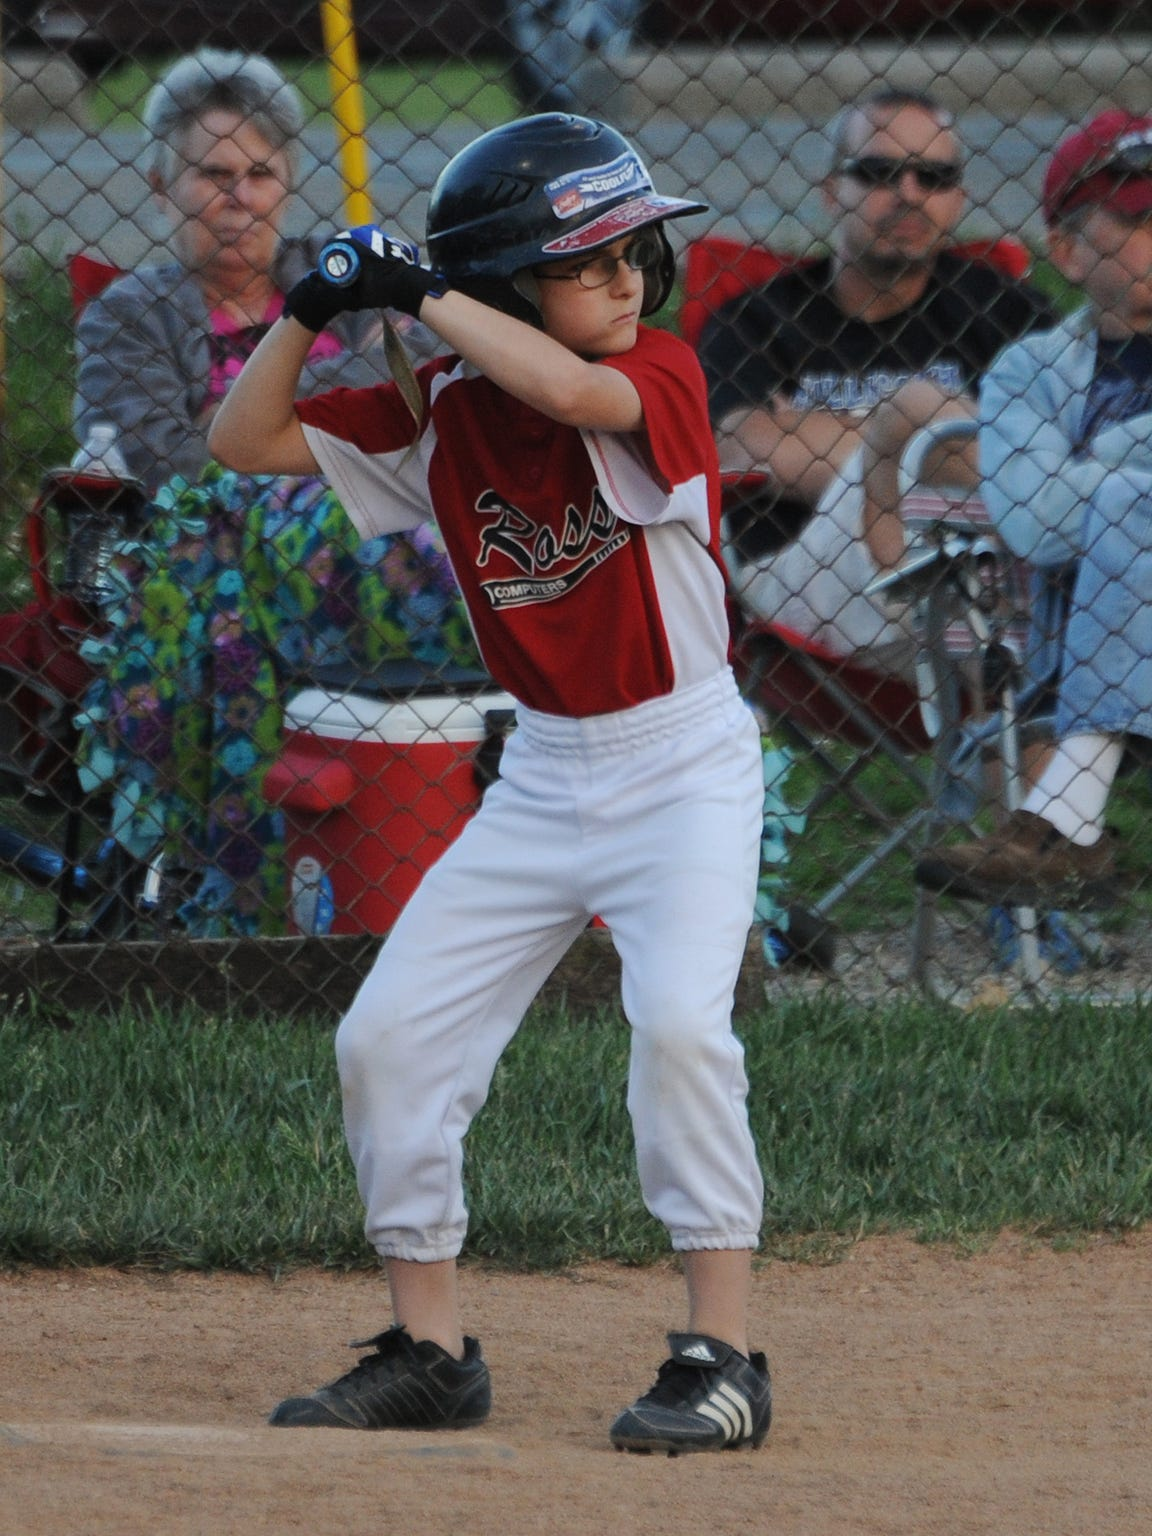 Chris Rutter goes up to bat during a game June 7 at